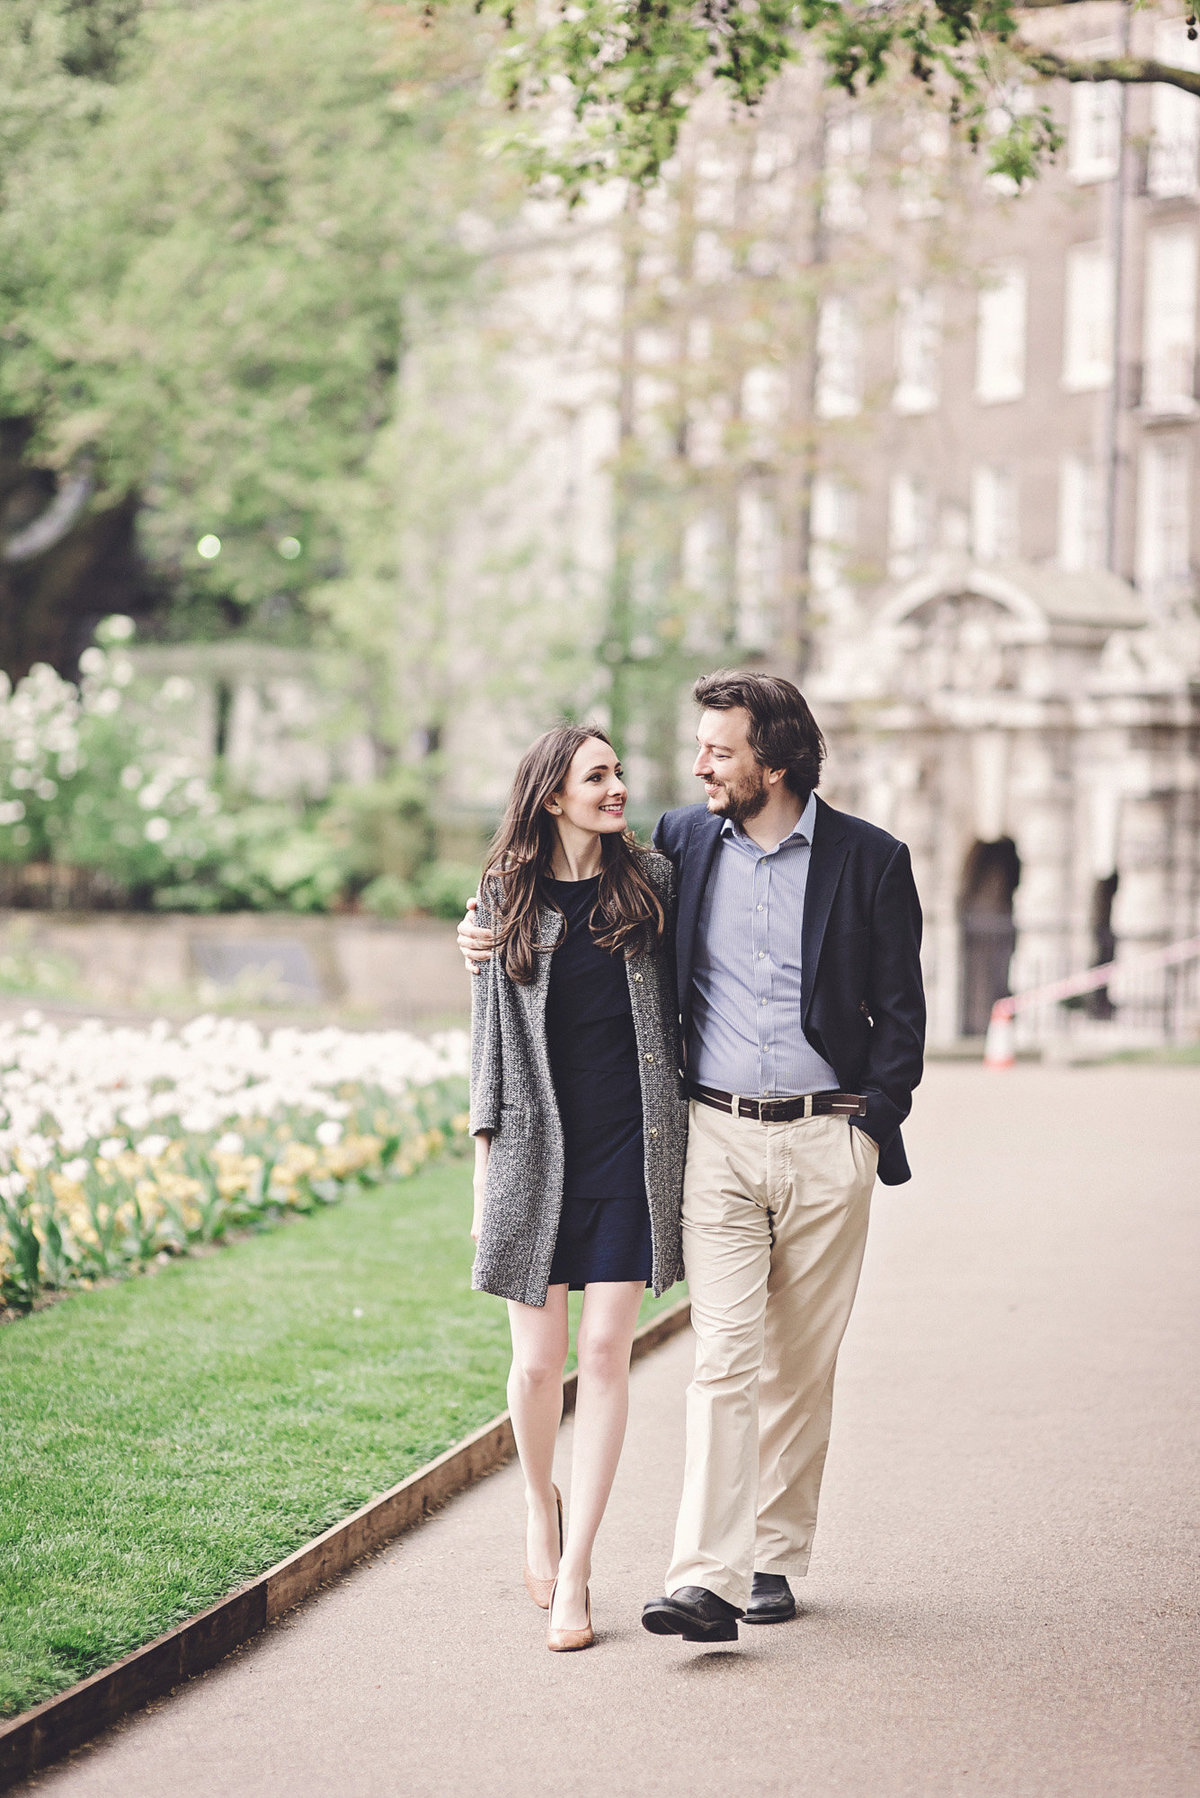 Engagement photography hertfordshire buckinghamshire london uk (9 of 34)